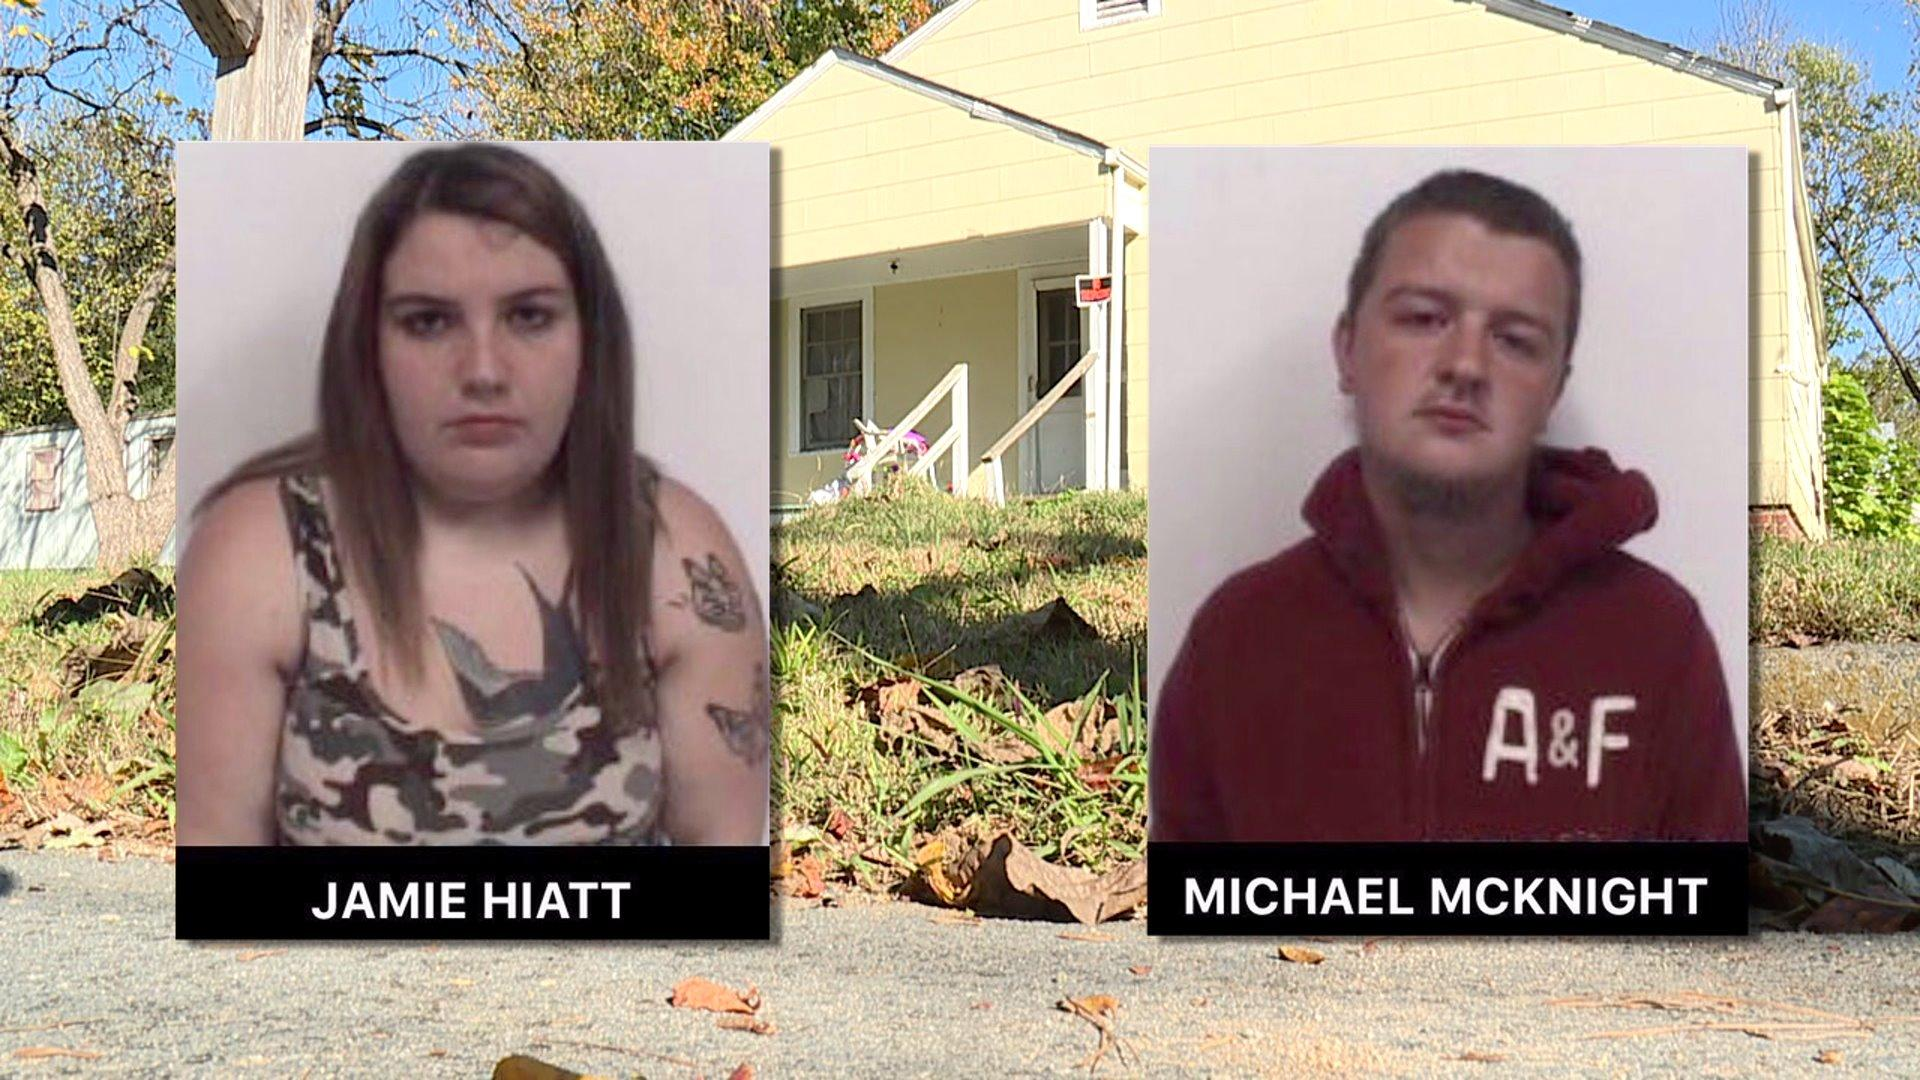 Couple arrested after 7 kids found in poor living conditions, 1 with maggots in diaper